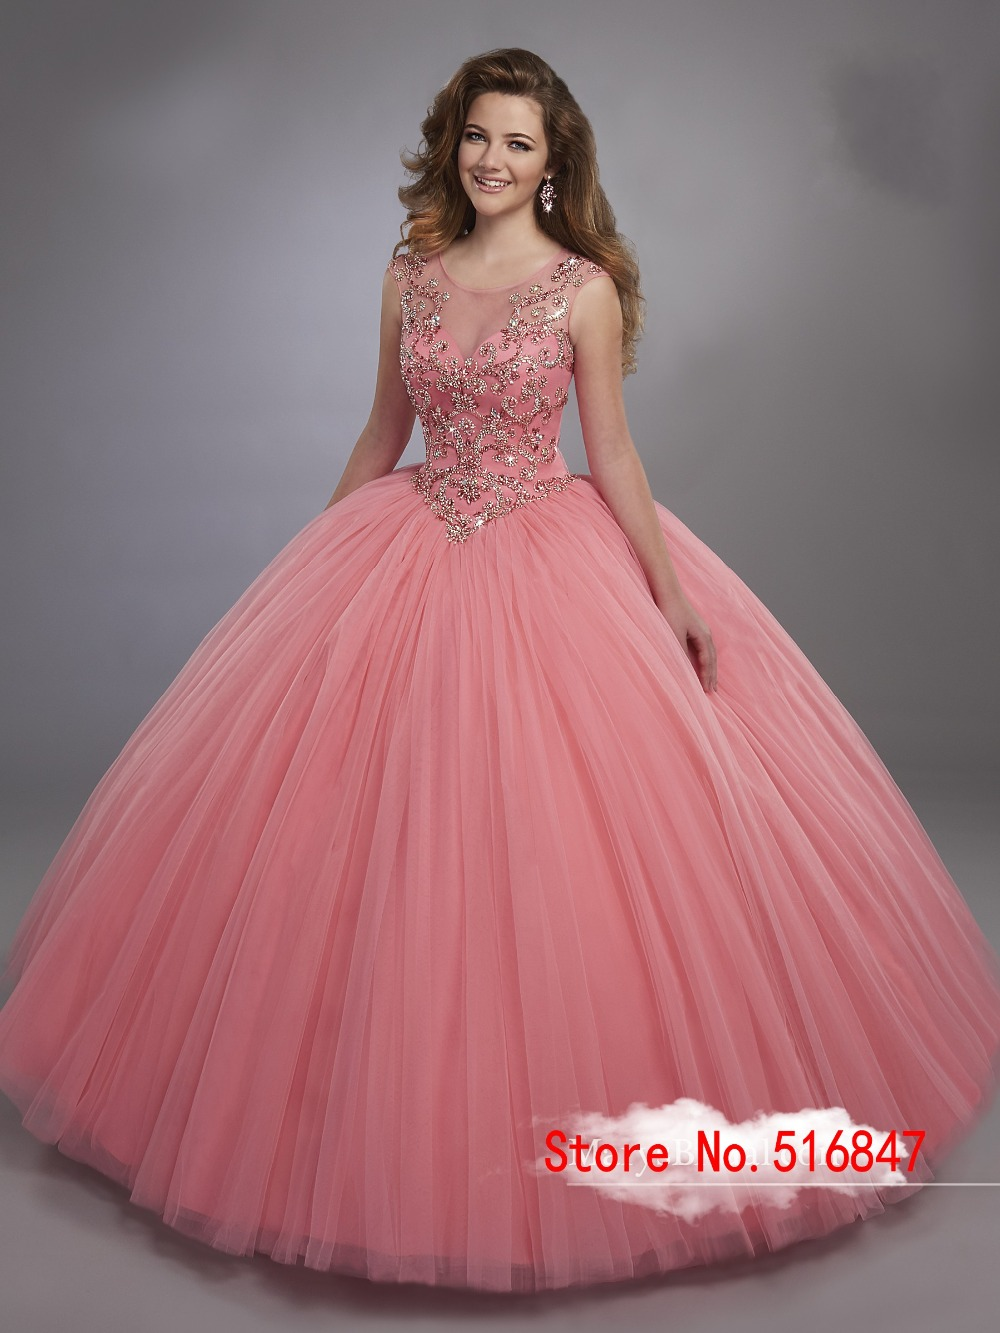 d46cb33253e Tulle Ball Gown Quinceanera Dresses - Gomes Weine AG